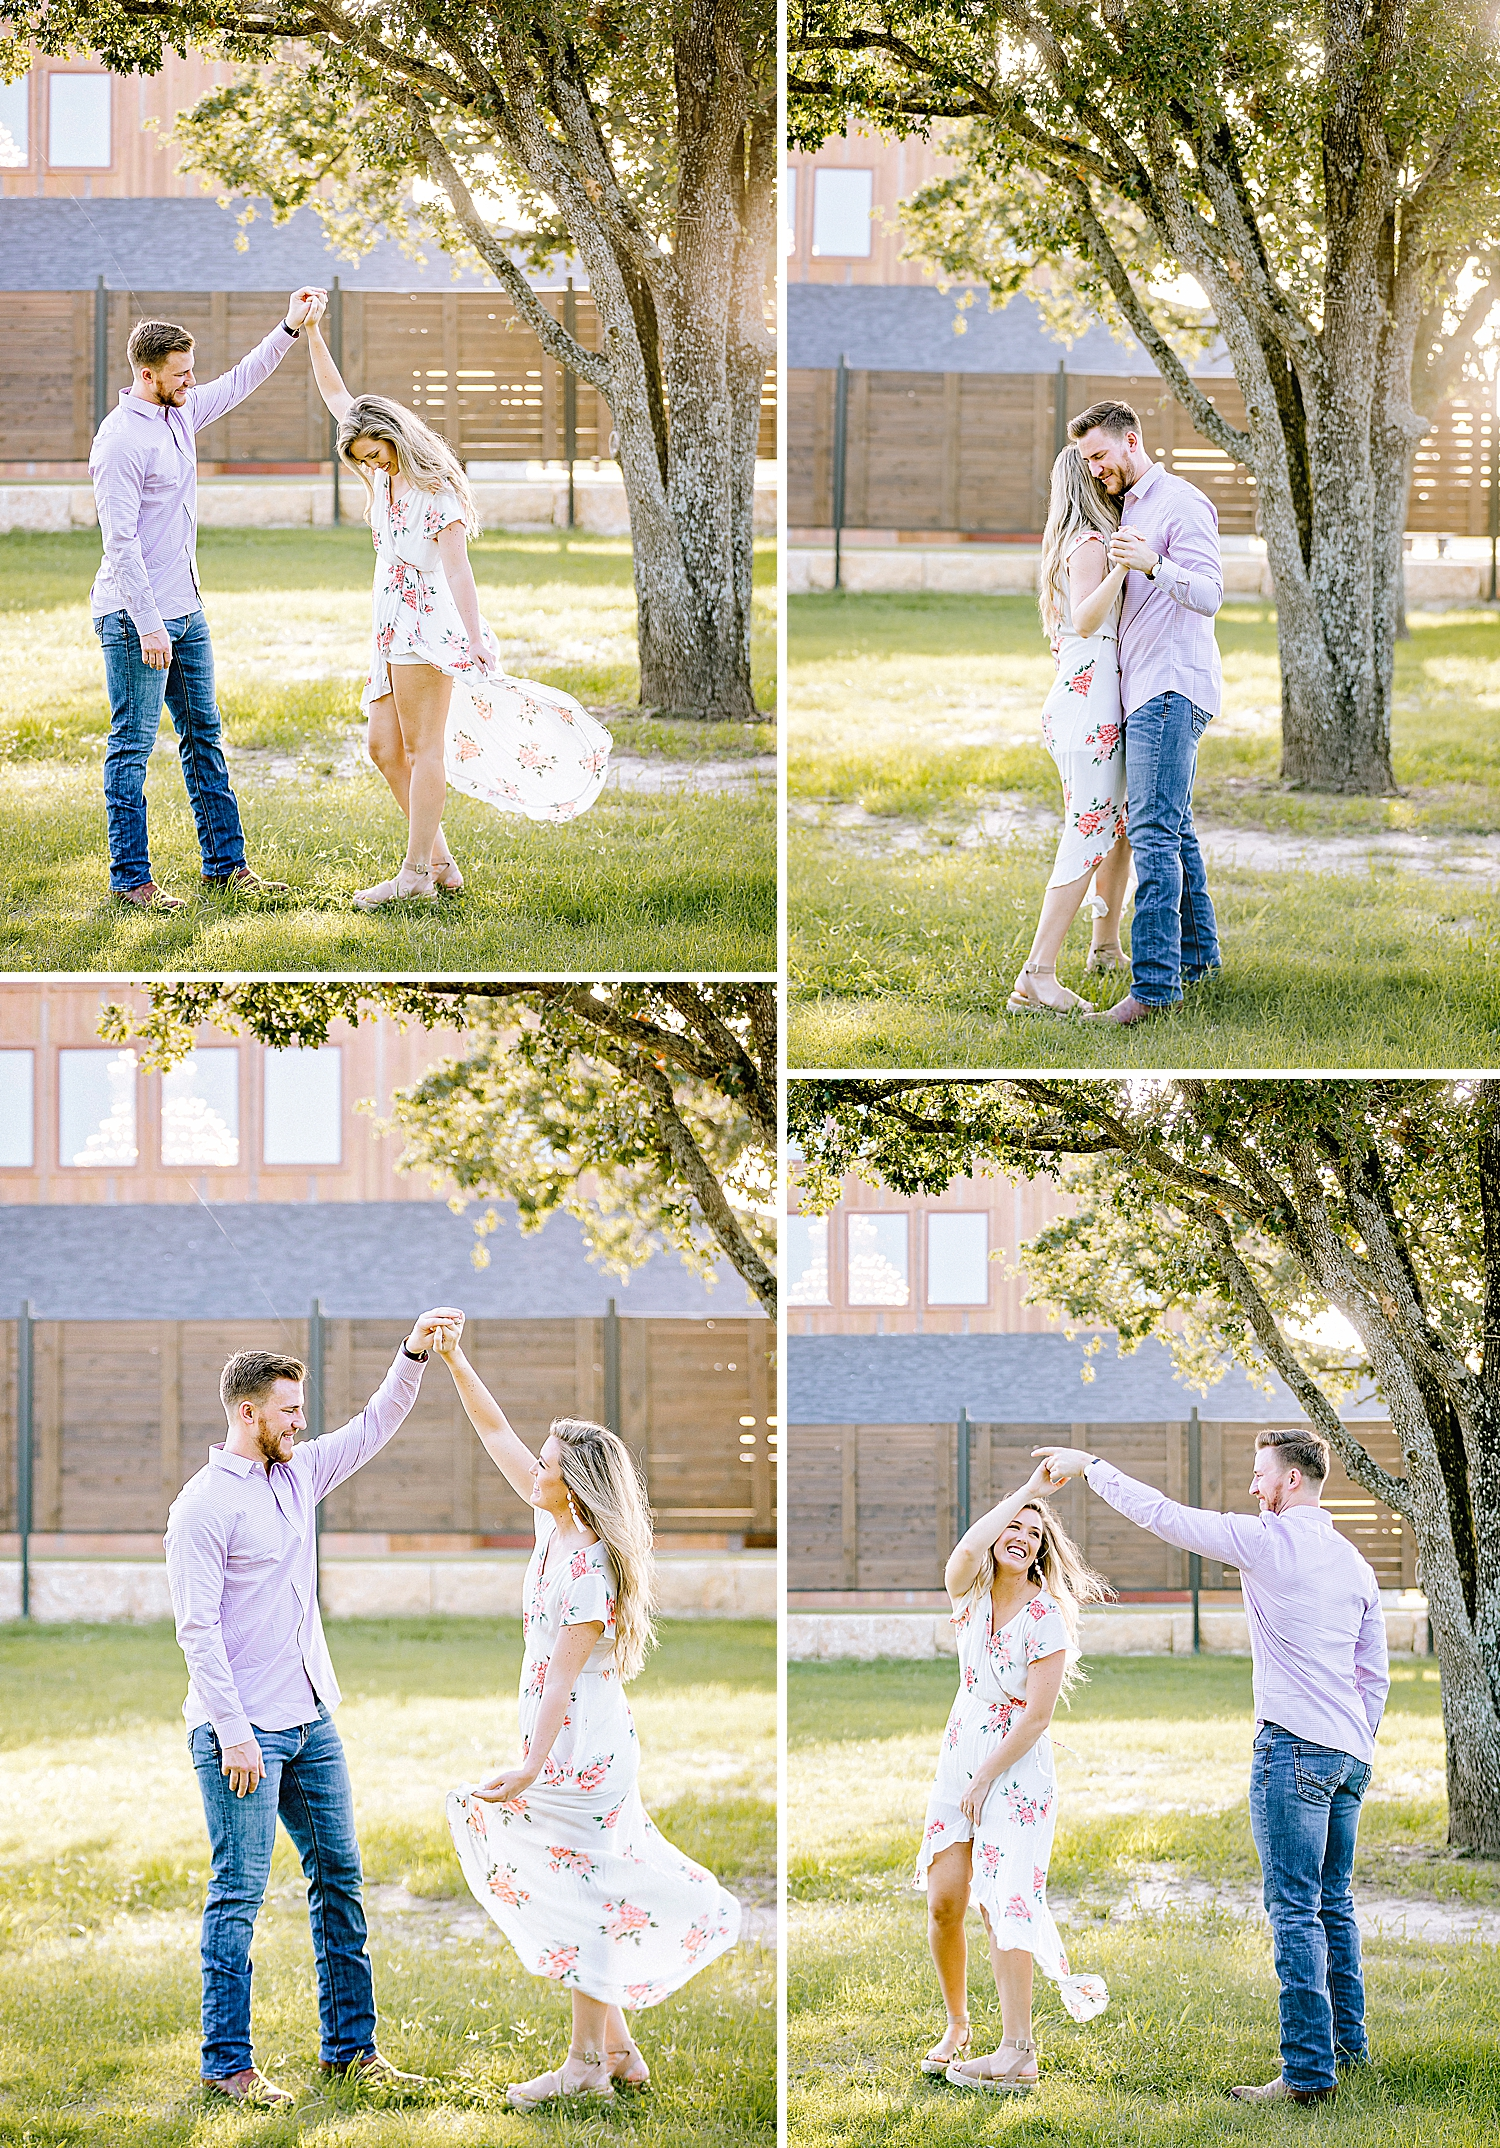 Carly-Barton-Photography-Engagement-Photos-College-Station-Texas-The-Weinberg-at-Wixon-Valley_0034.jpg